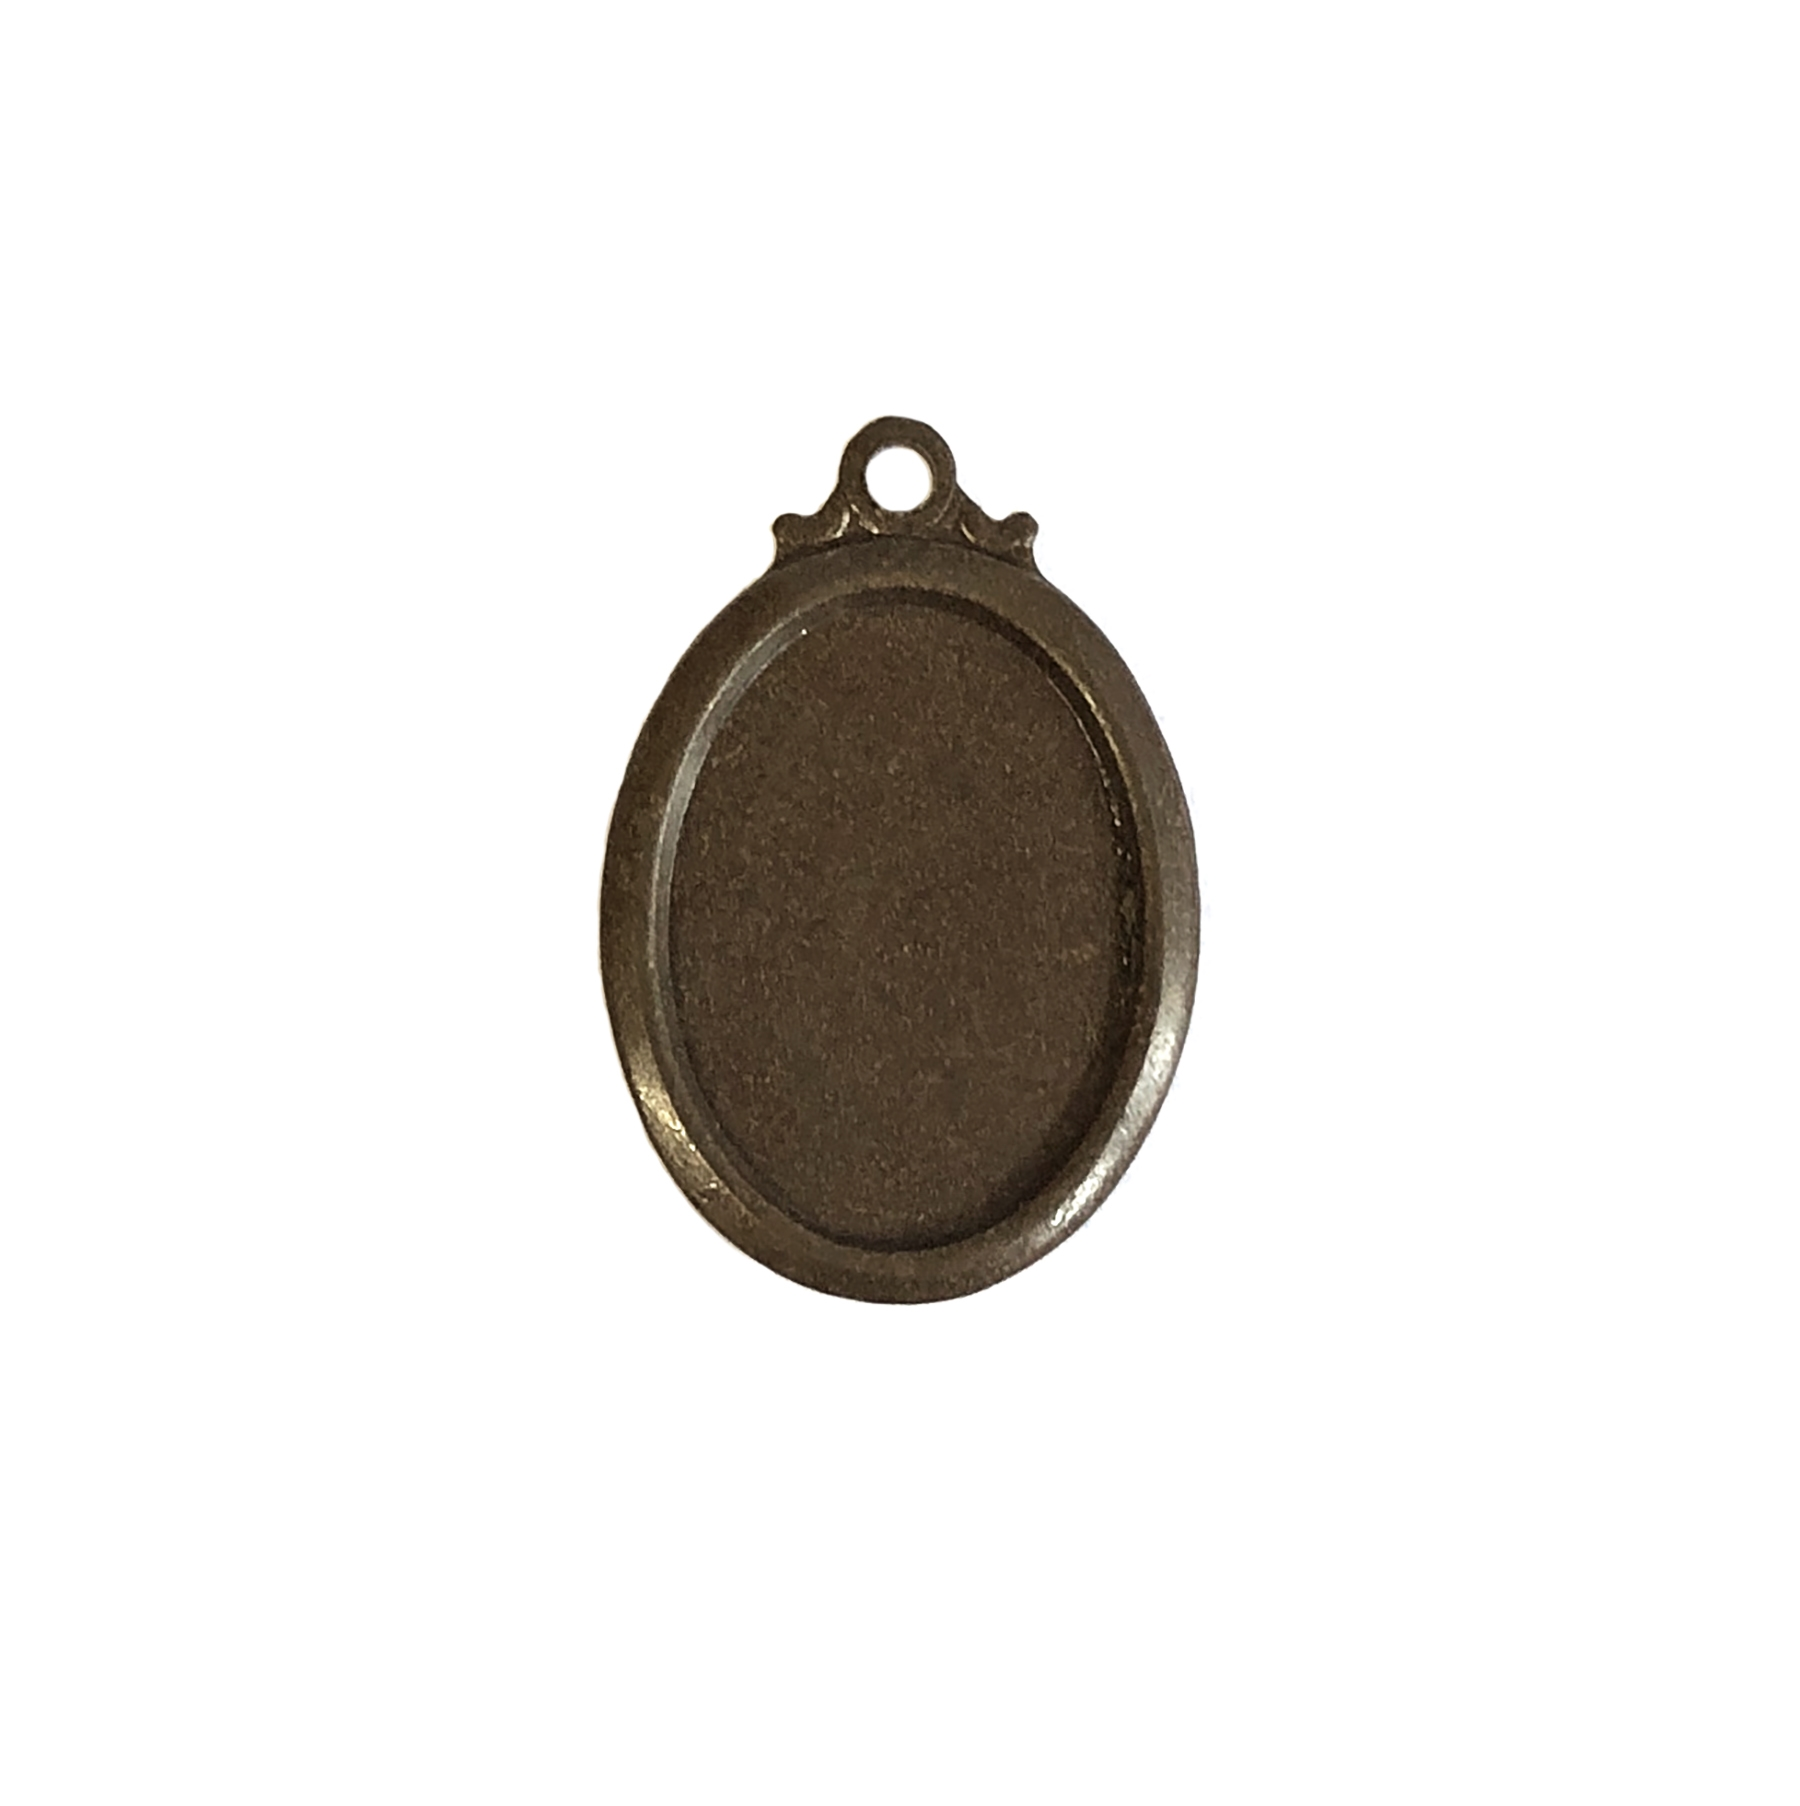 pendant style mount, chocolate brass, mount, pendant, pendant mount, simply mount, jewelry mount, jewelry pendant, 18x13mm mount, US made, nickel free, jewelry making, jewelry supplies, stamping supplies, vintage supplies, B'sue Boutiques, 09978